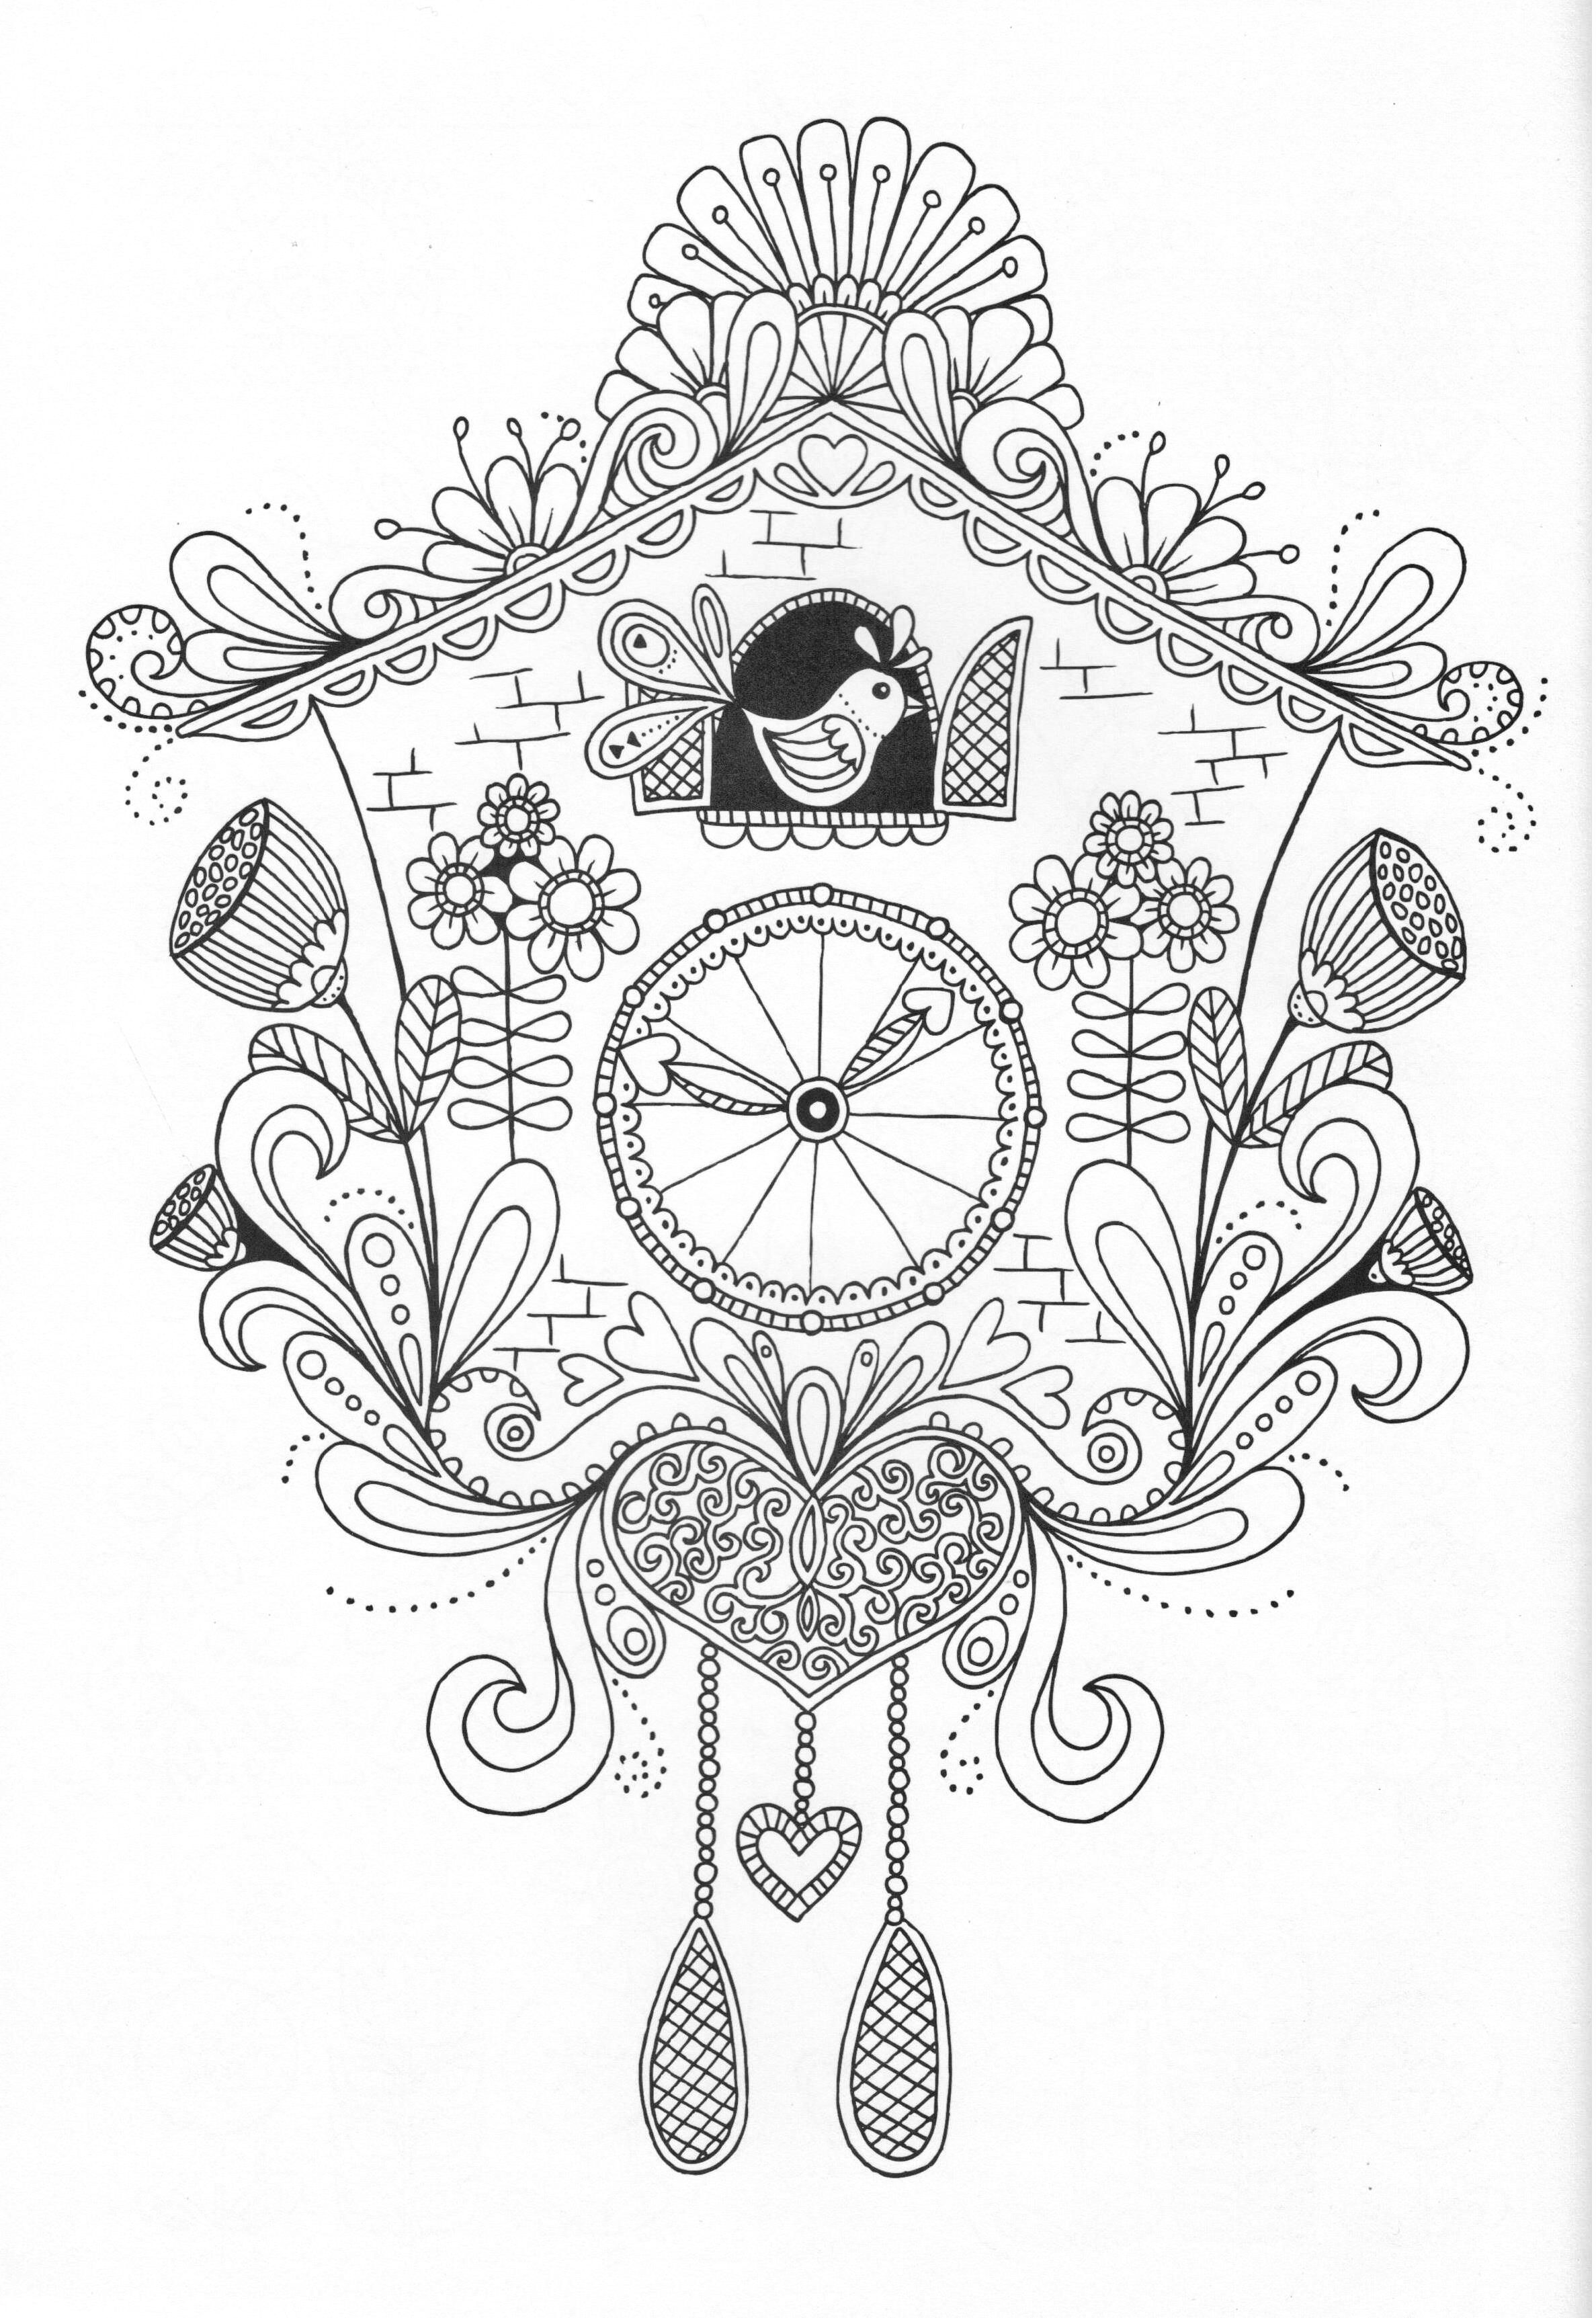 Coloring pages up - Adult Coloring Page Join My Grown Up Coloring Group On Fb I